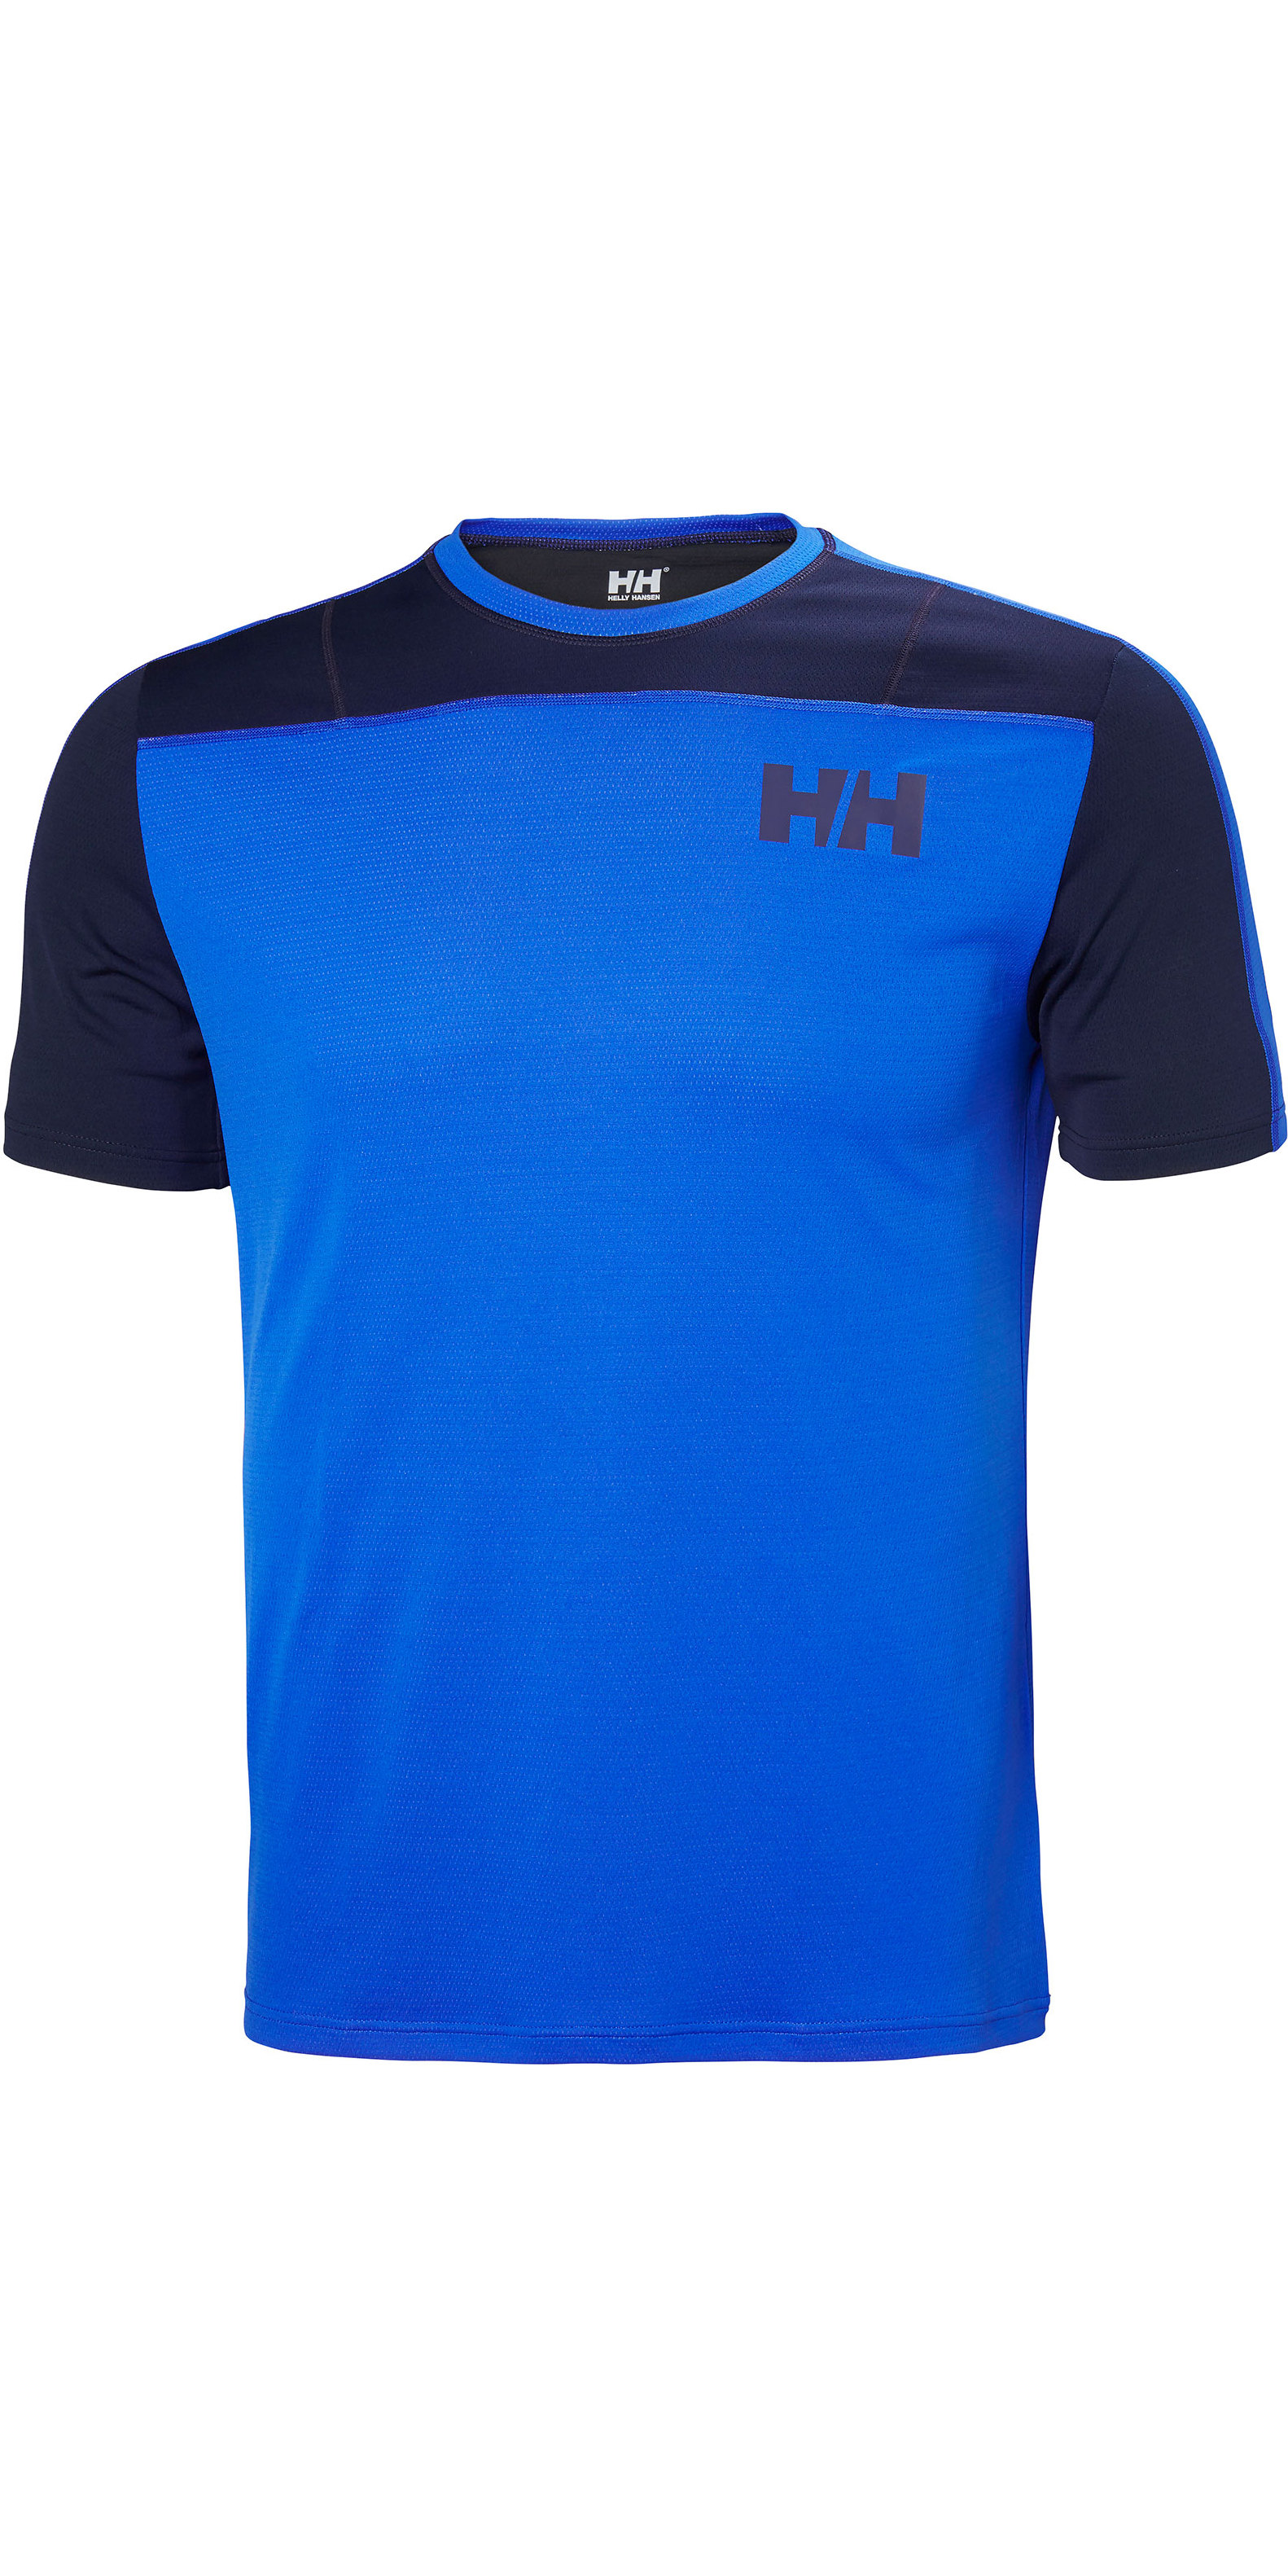 caeed41a00 2019 Helly Hansen Mens Lifa Active Light Short Sleeve T-shirt Olympian Blue  49330 - Thermal   Wetsuit Outlet